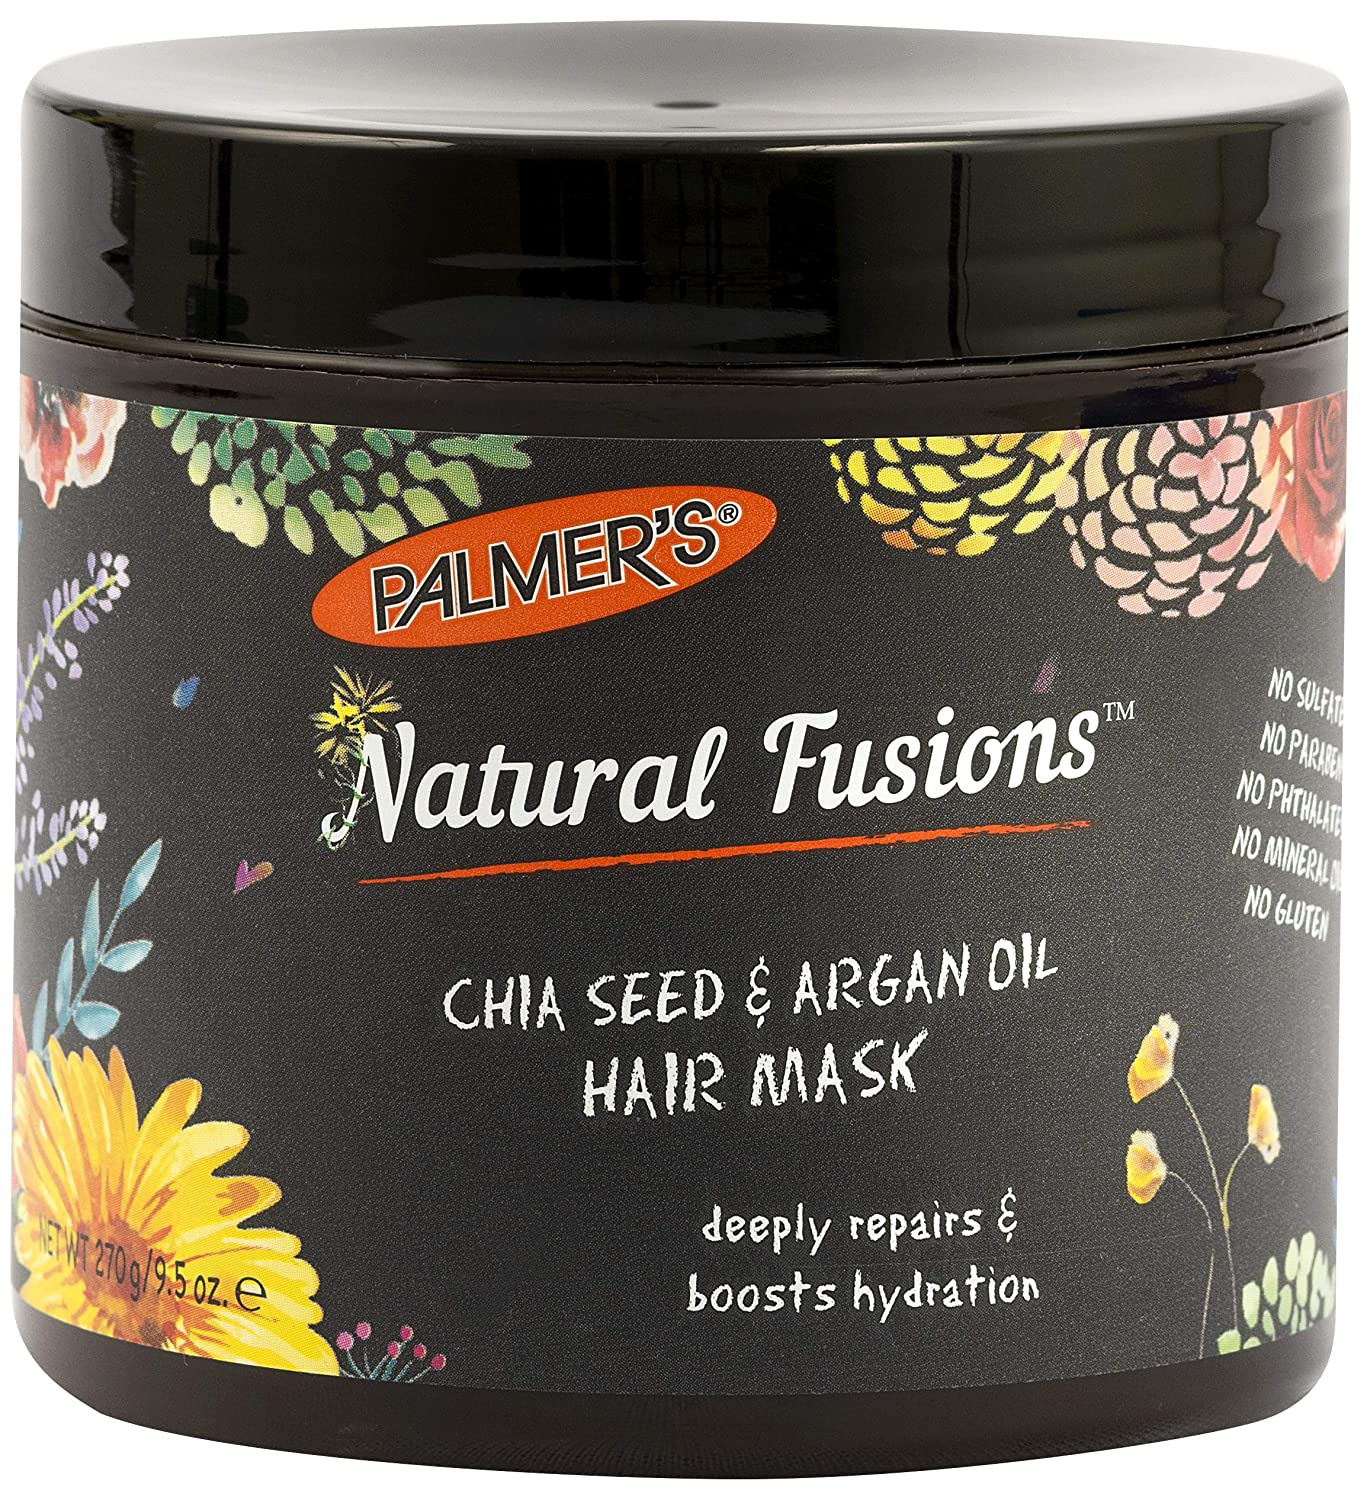 Palmer's Natural Fusions Chia Seed & Argan Oil Hair Mask, for Deep Repair and Hydration | 9.5 Ounces